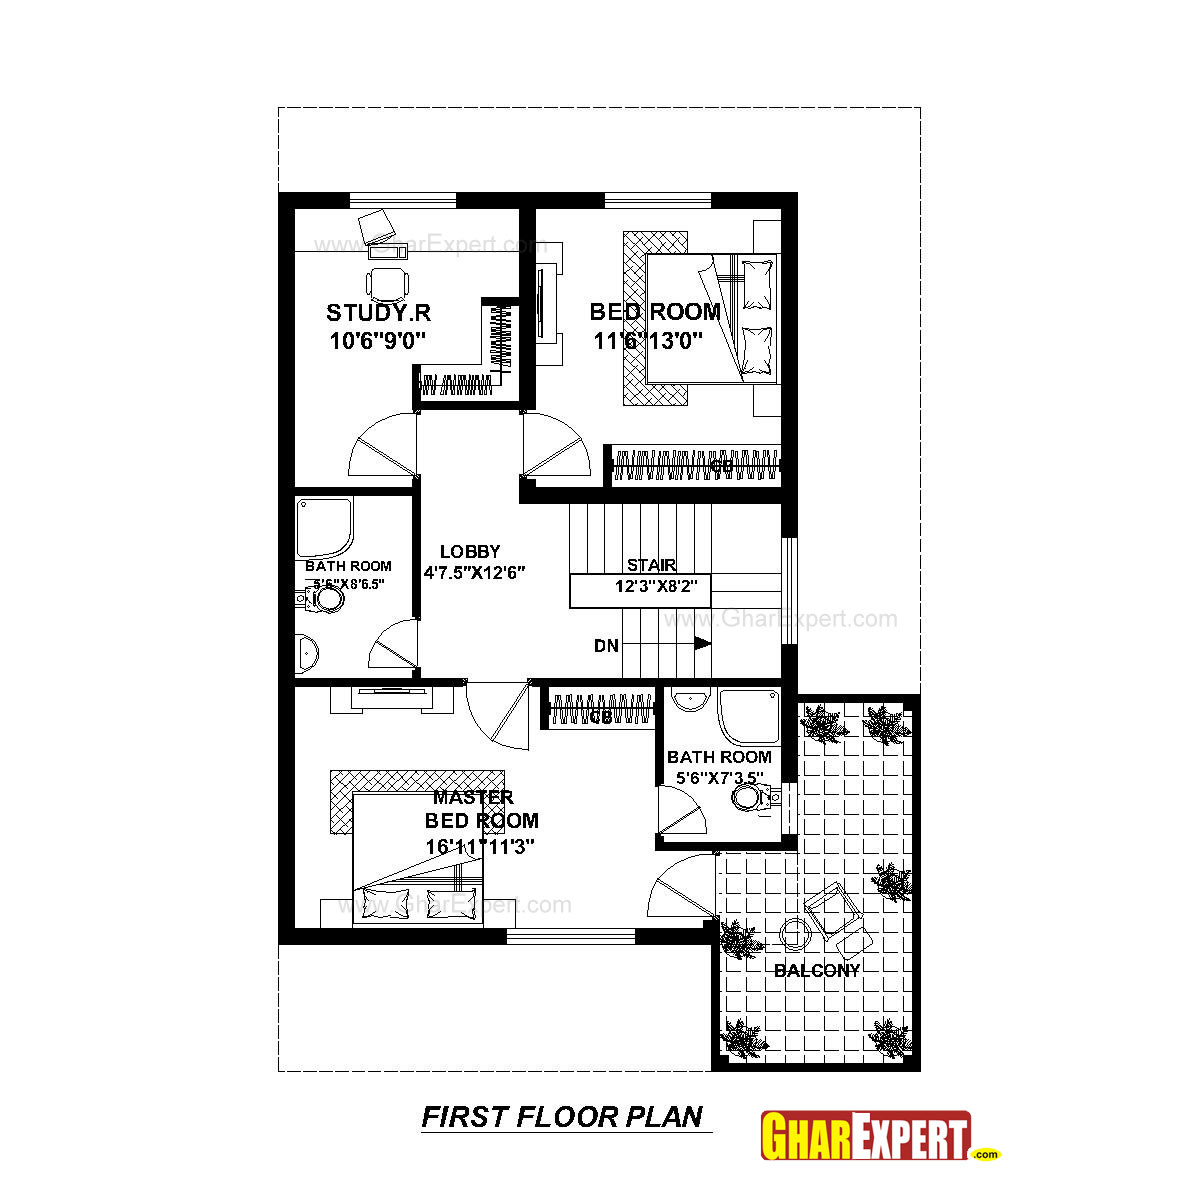 House plan for 30 feet by 45 feet plot plot size 150 30 feet wide house plans